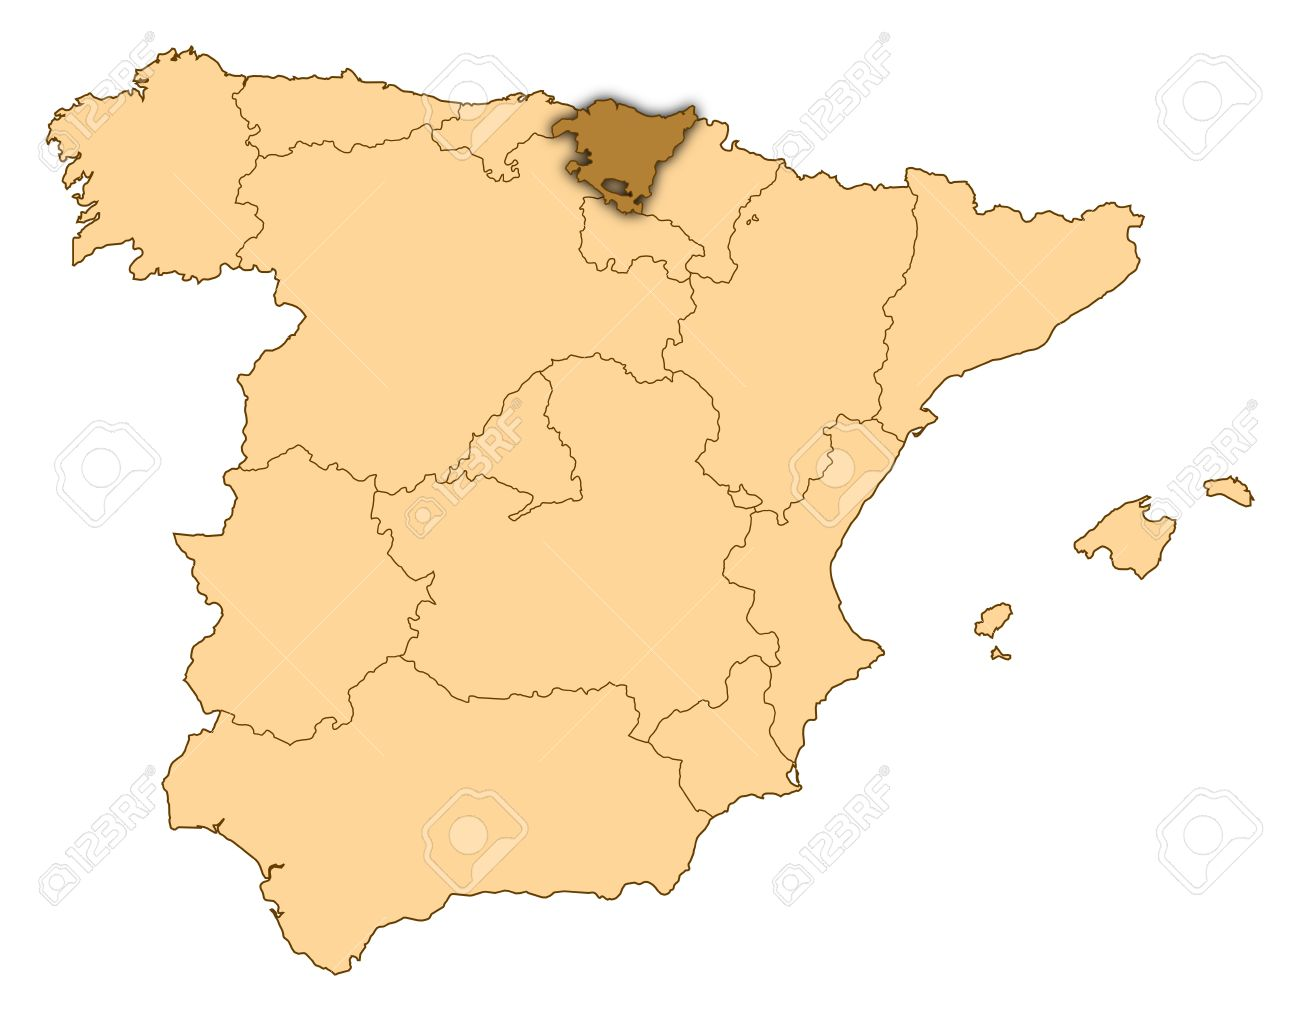 Basque Map Of Spain.Map Of Spain Where Basque Country Is Highlighted